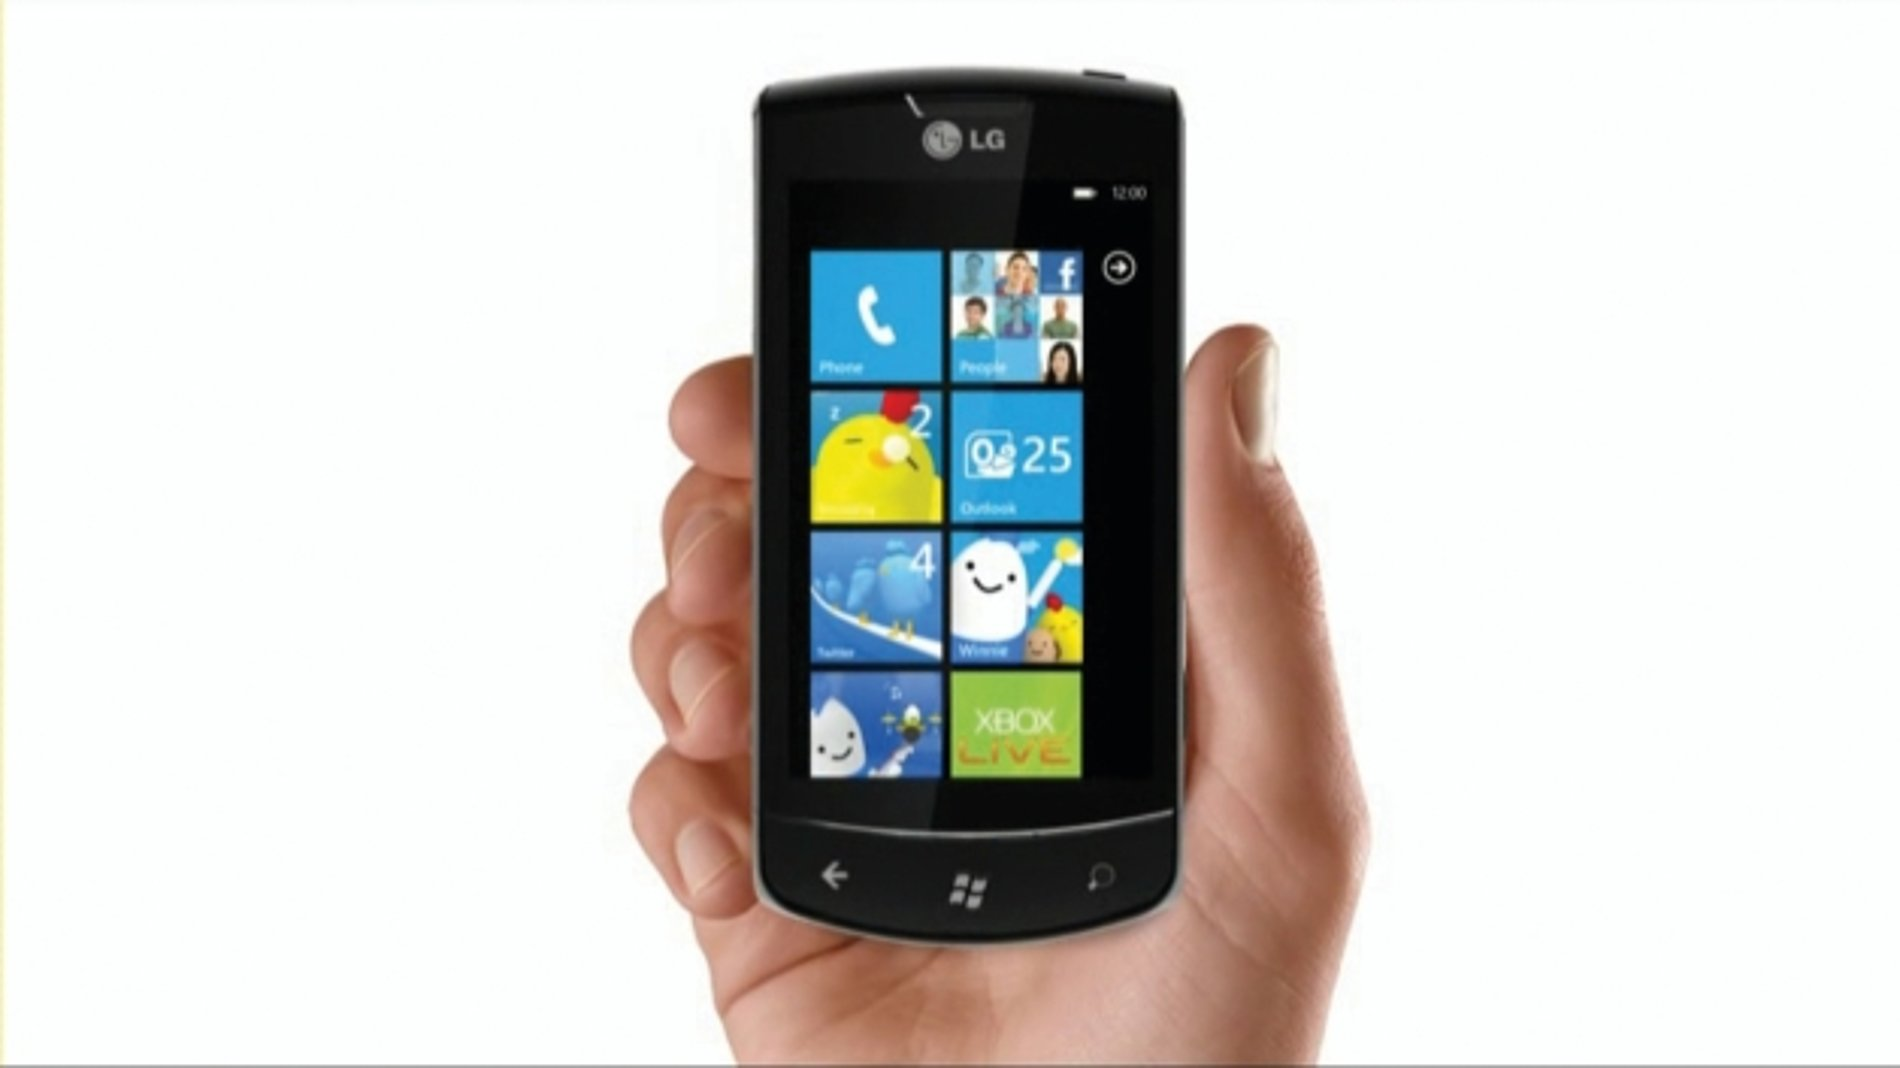 LG Windows Phone with Winny | Red Dot Design Award